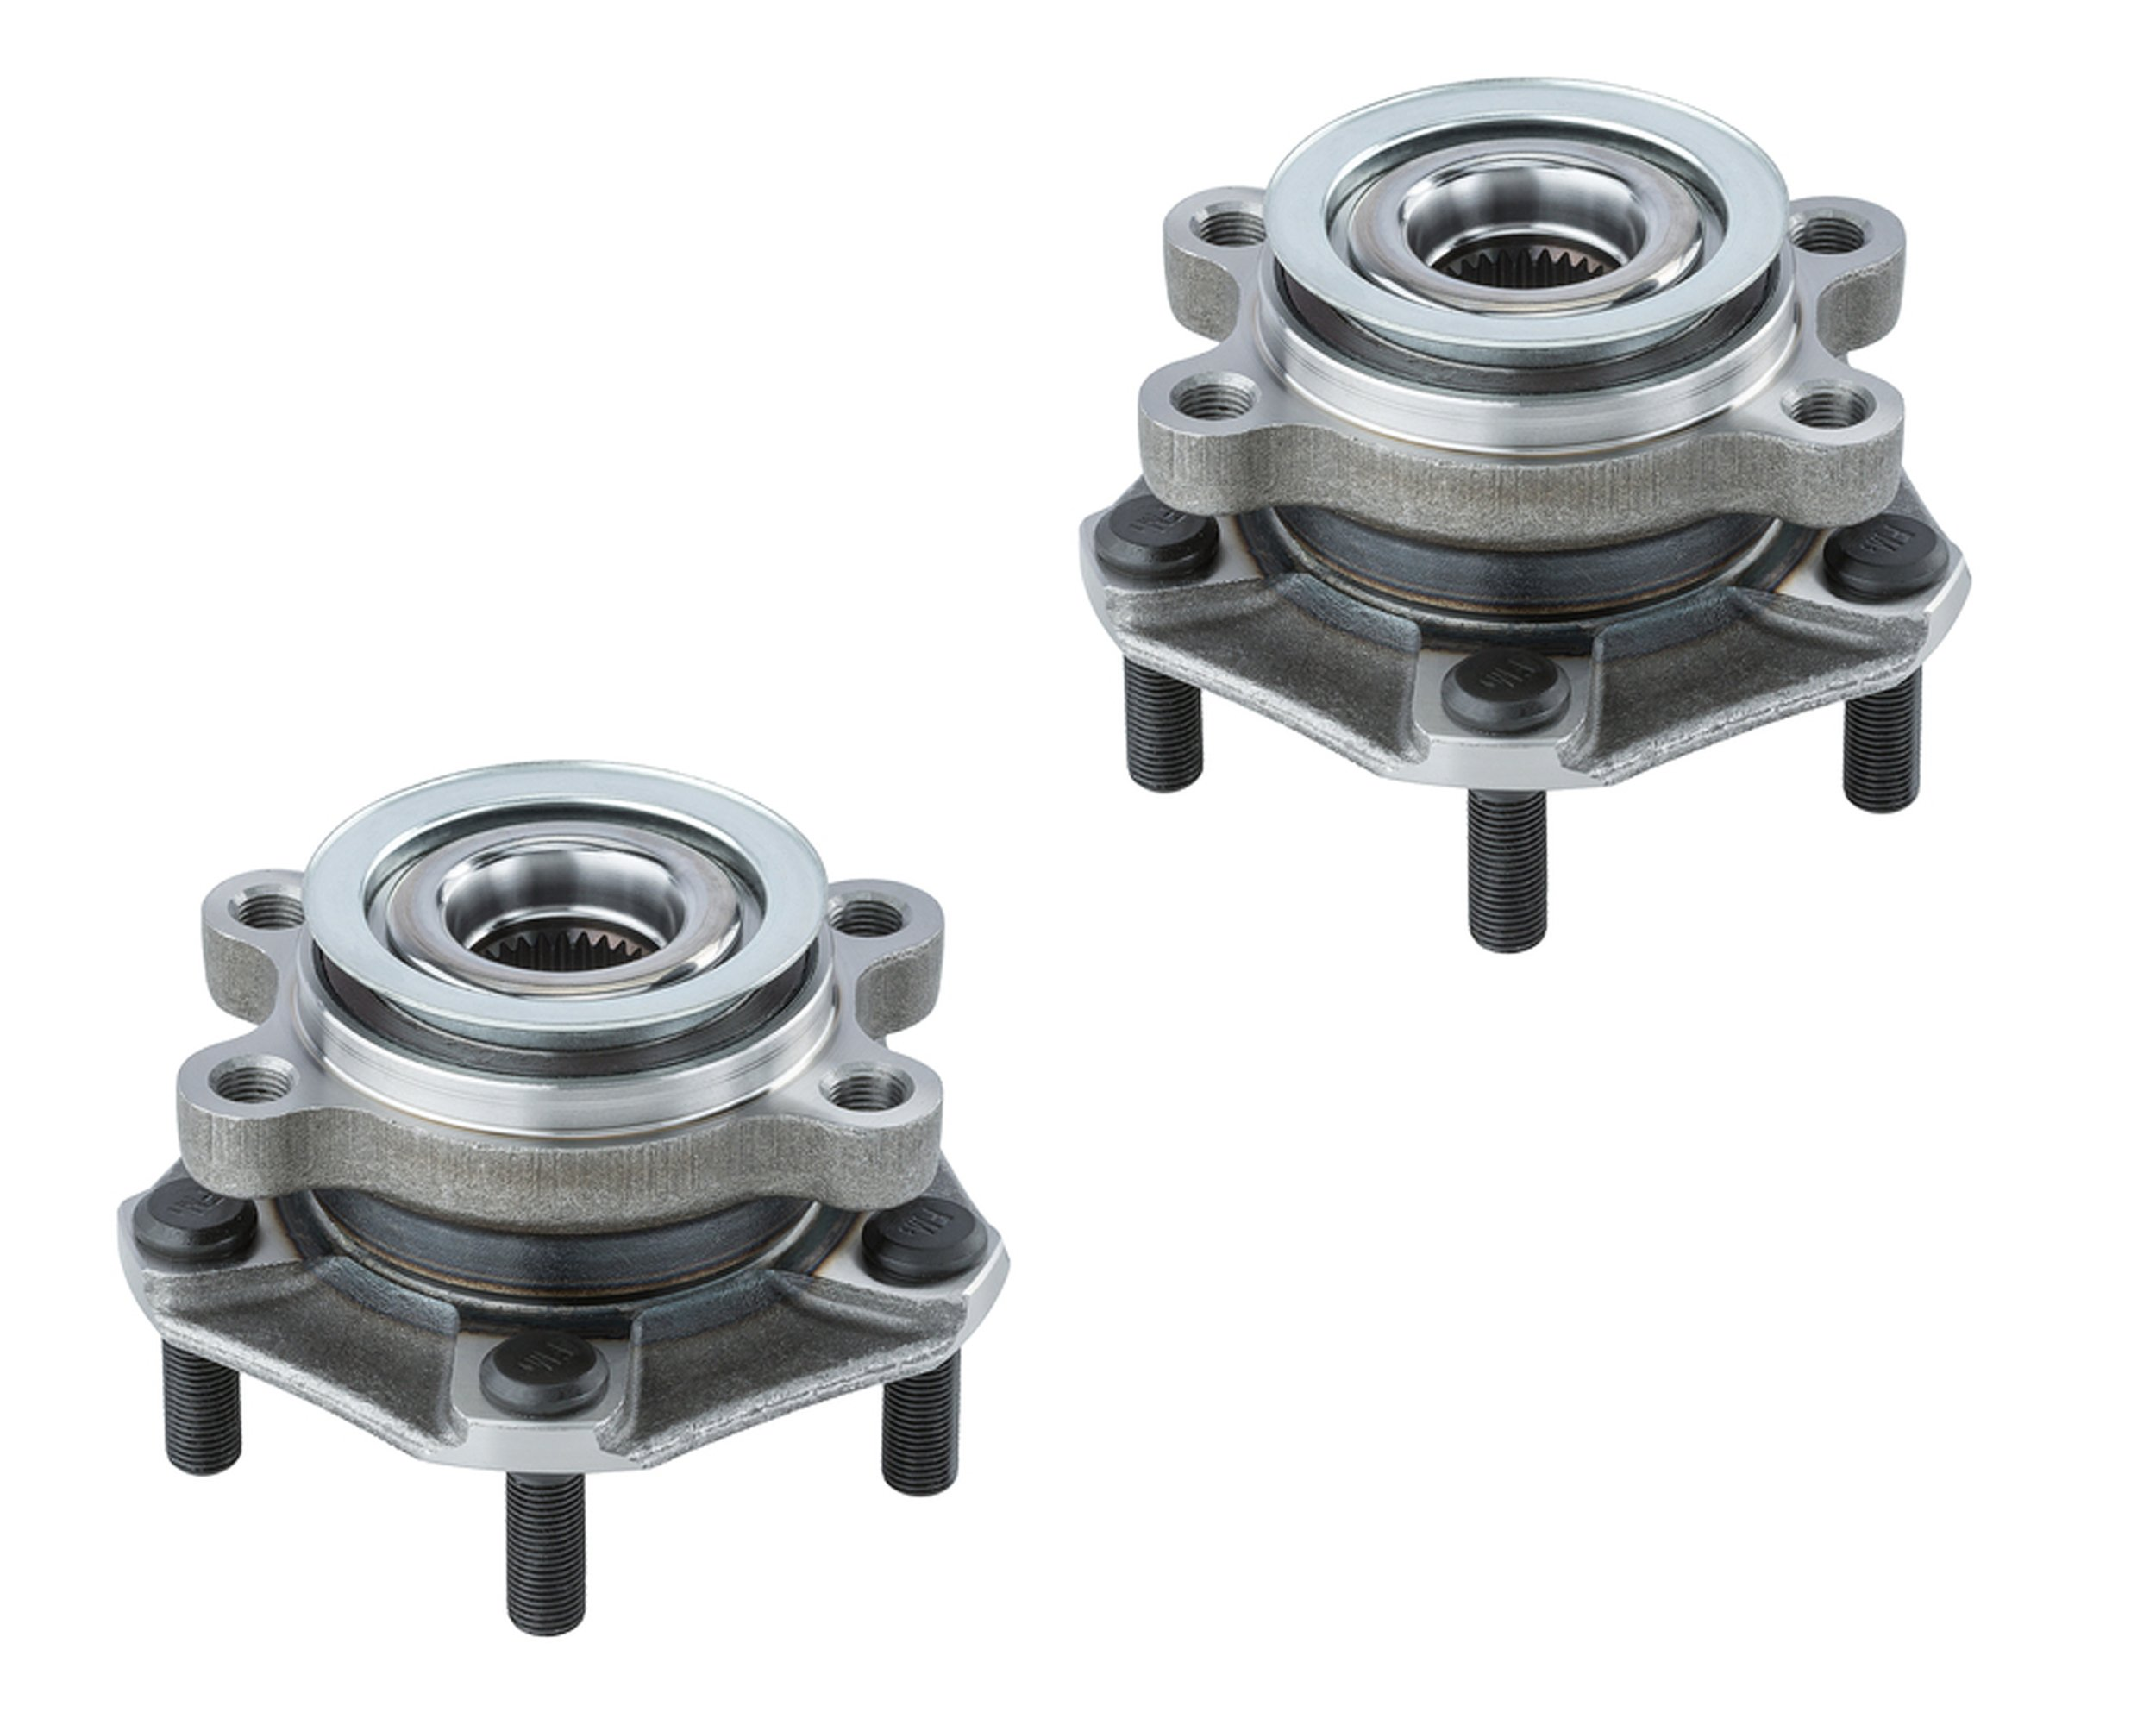 DTA Front Wheel Bearing & Hub Full Assemblies NT513364 x2 Brand New (2pcs) Fits Chevrolet City Express, Nissan Leaf, NV200, Sentra by DRIVE TECH AMERICA